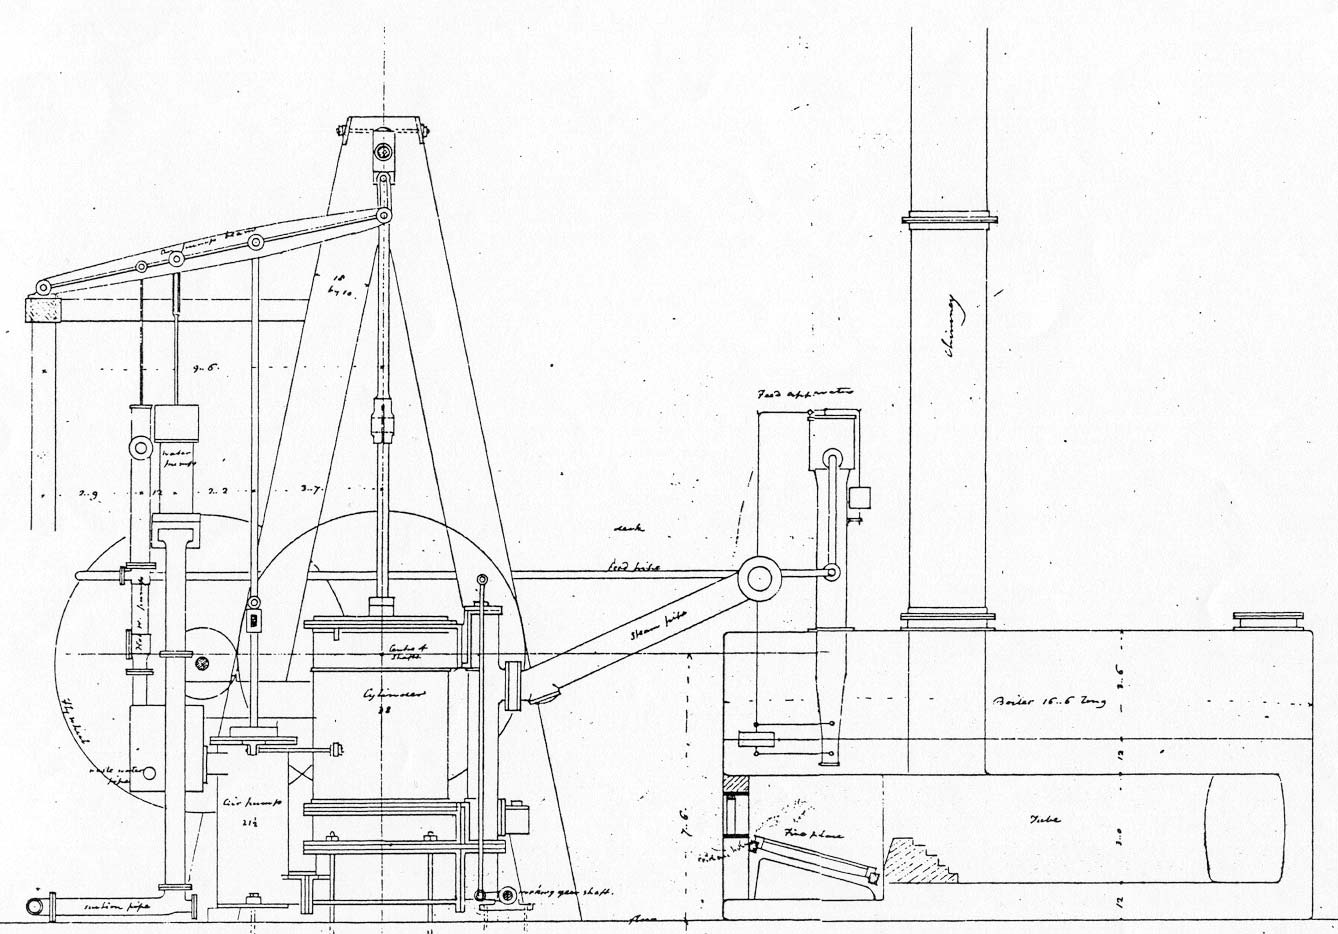 View The Steamboat Frontenac S Engine Drawings Maritime History Of The Great Lakes